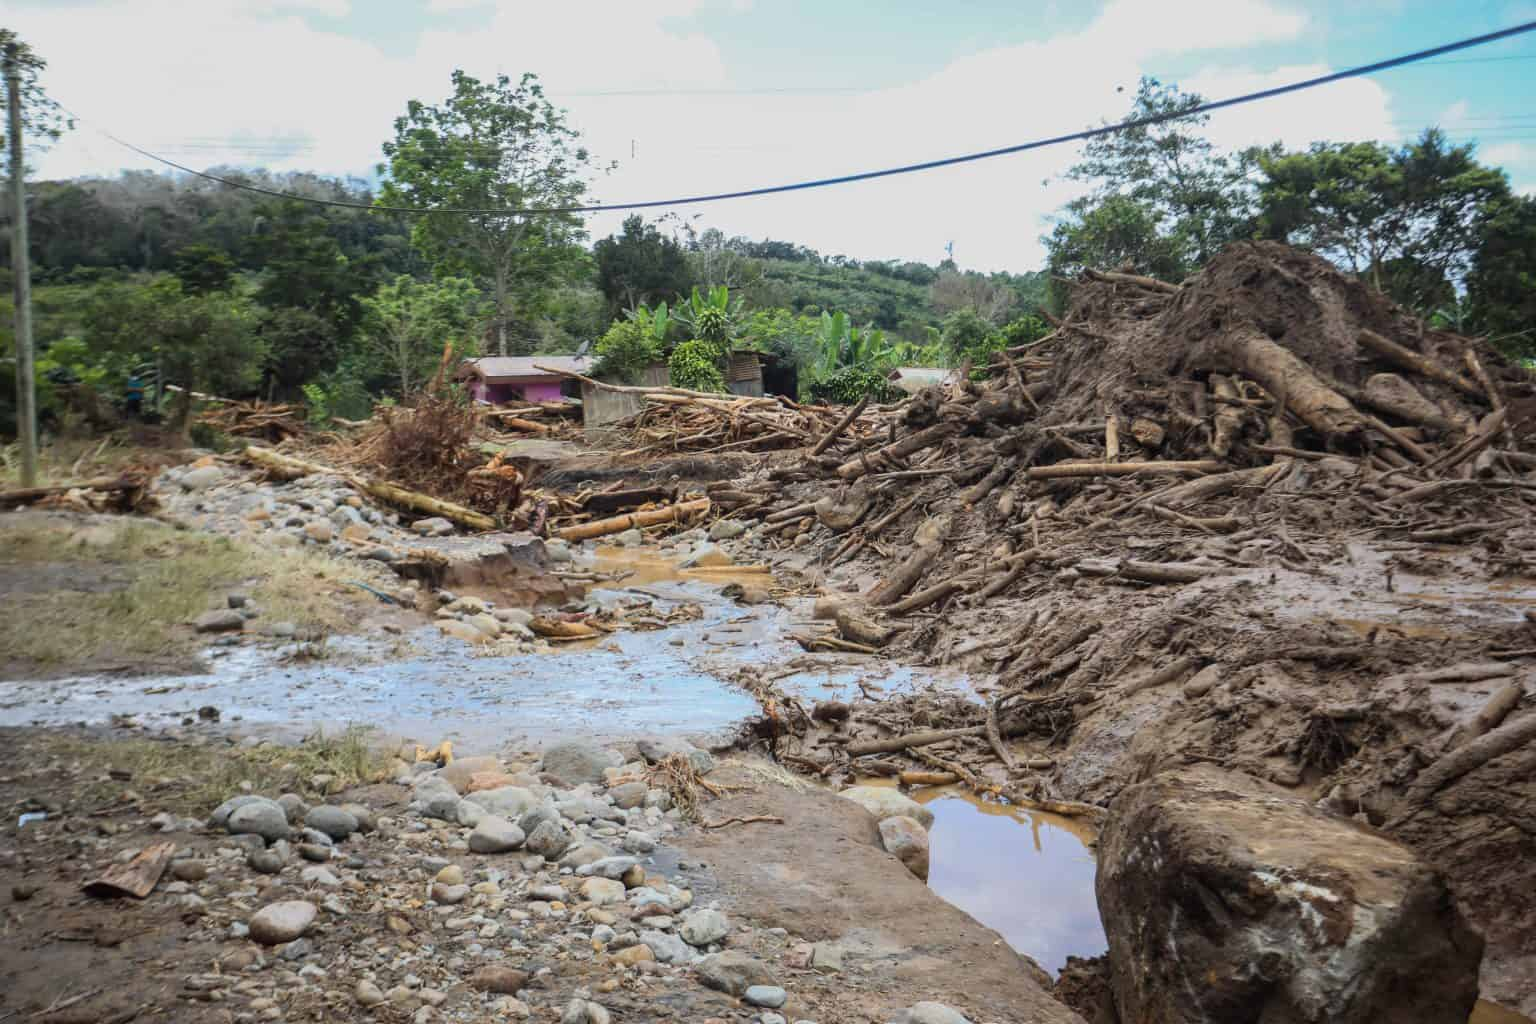 Landslides and flooding related to Hurricane Eta damaged houses and infrastructure in Costa Rica's Southern Zone.